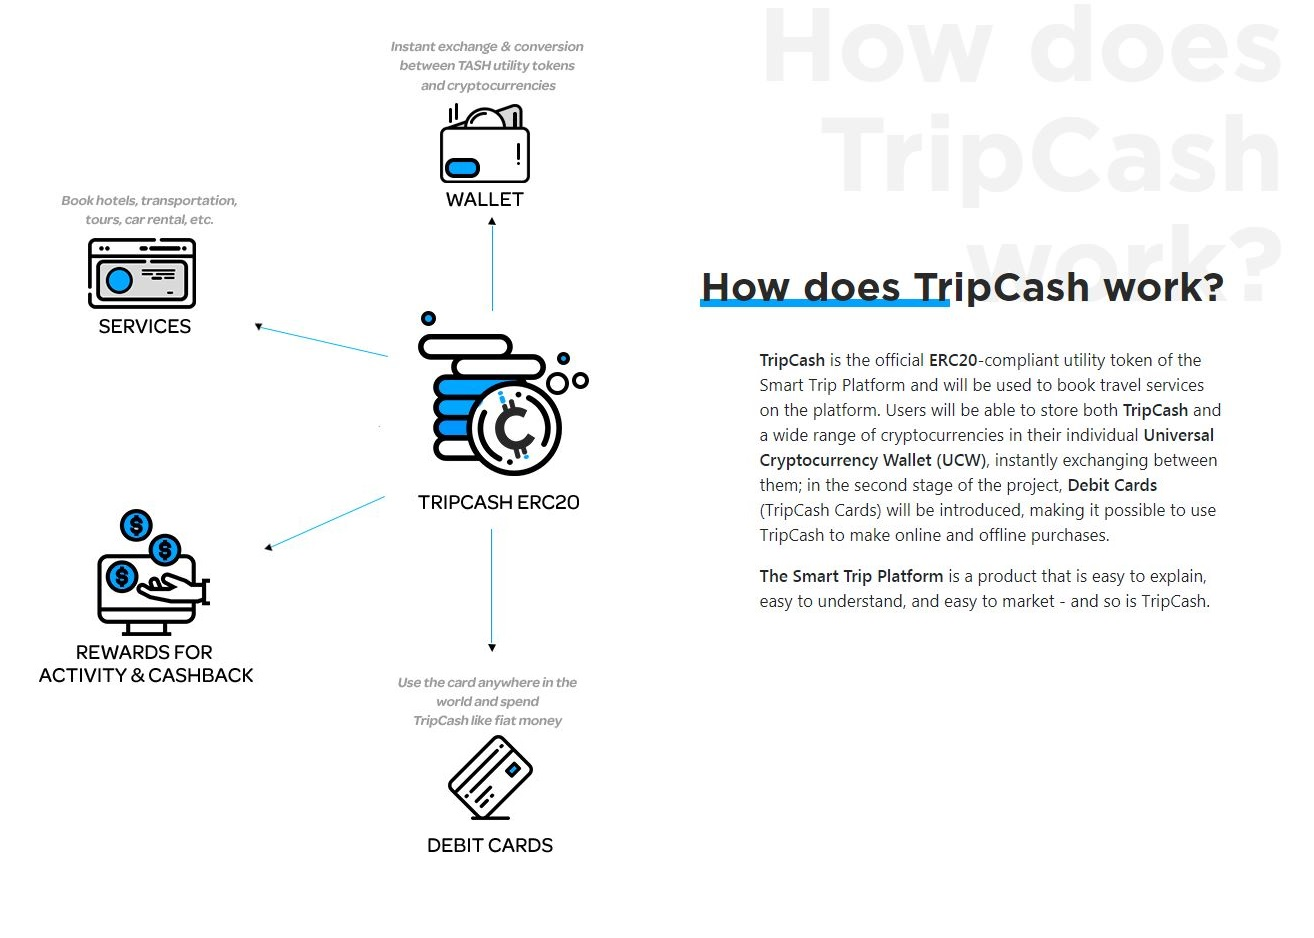 How does TripCash work